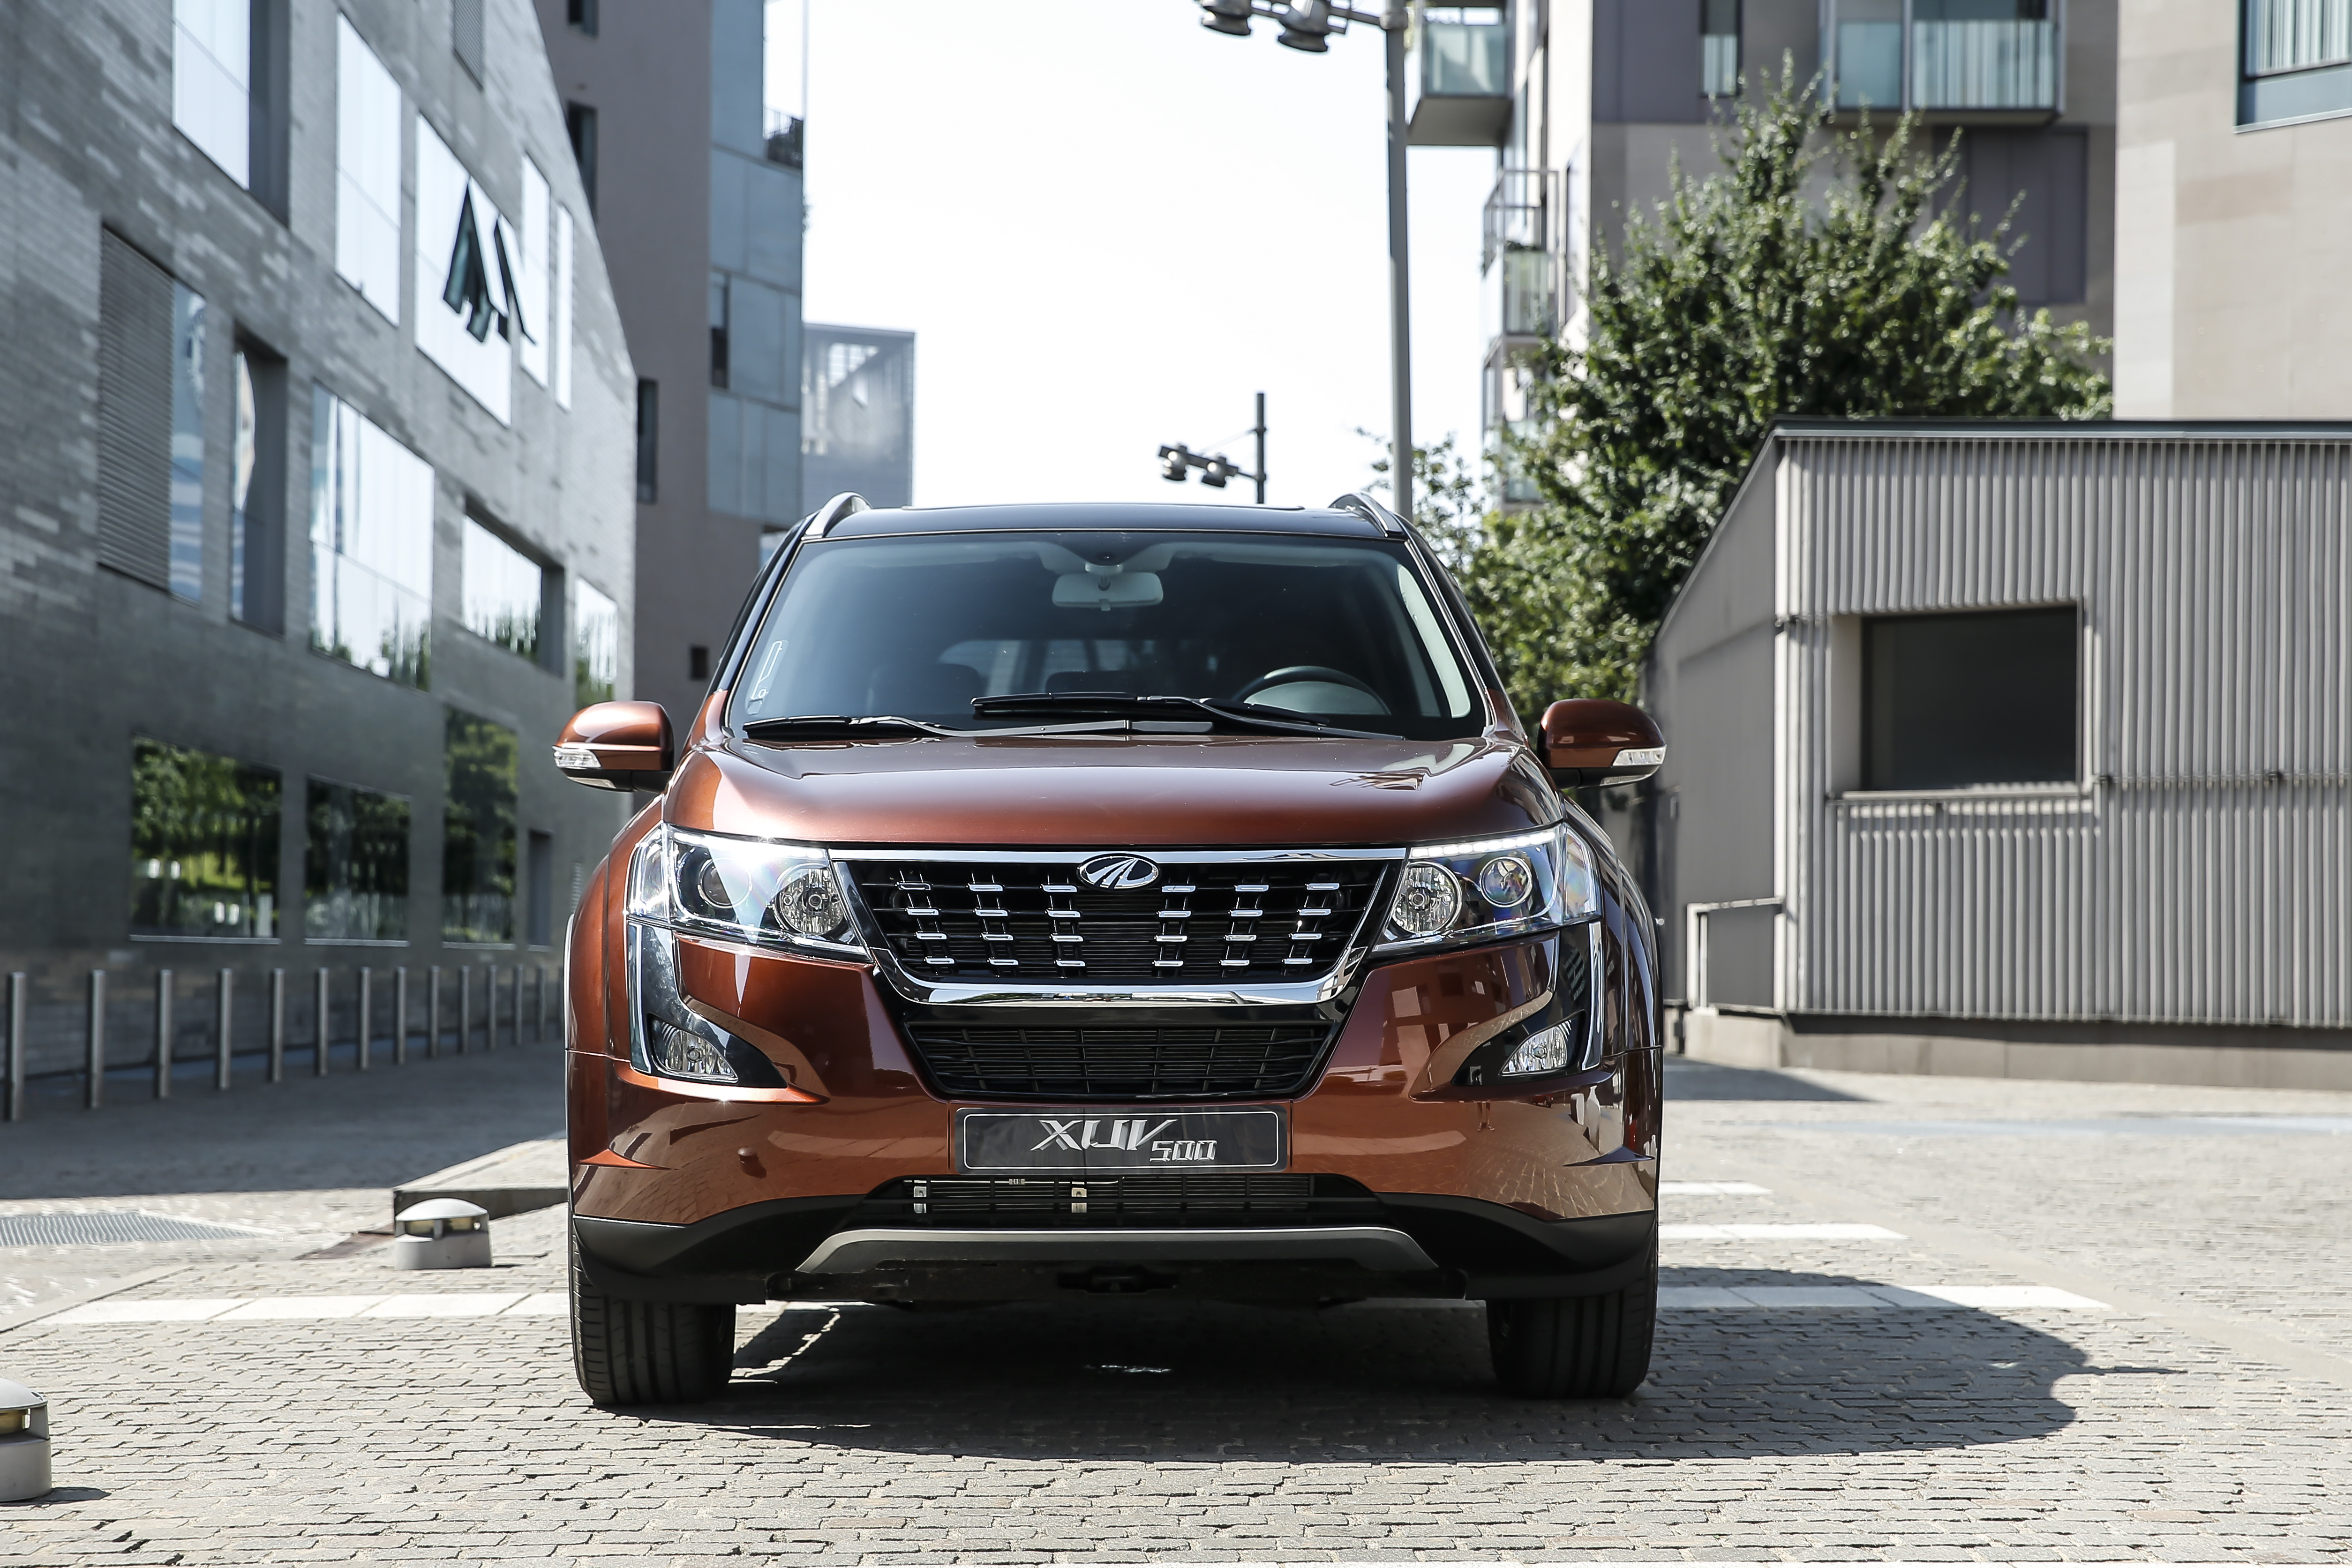 XUV500_action_5682-189